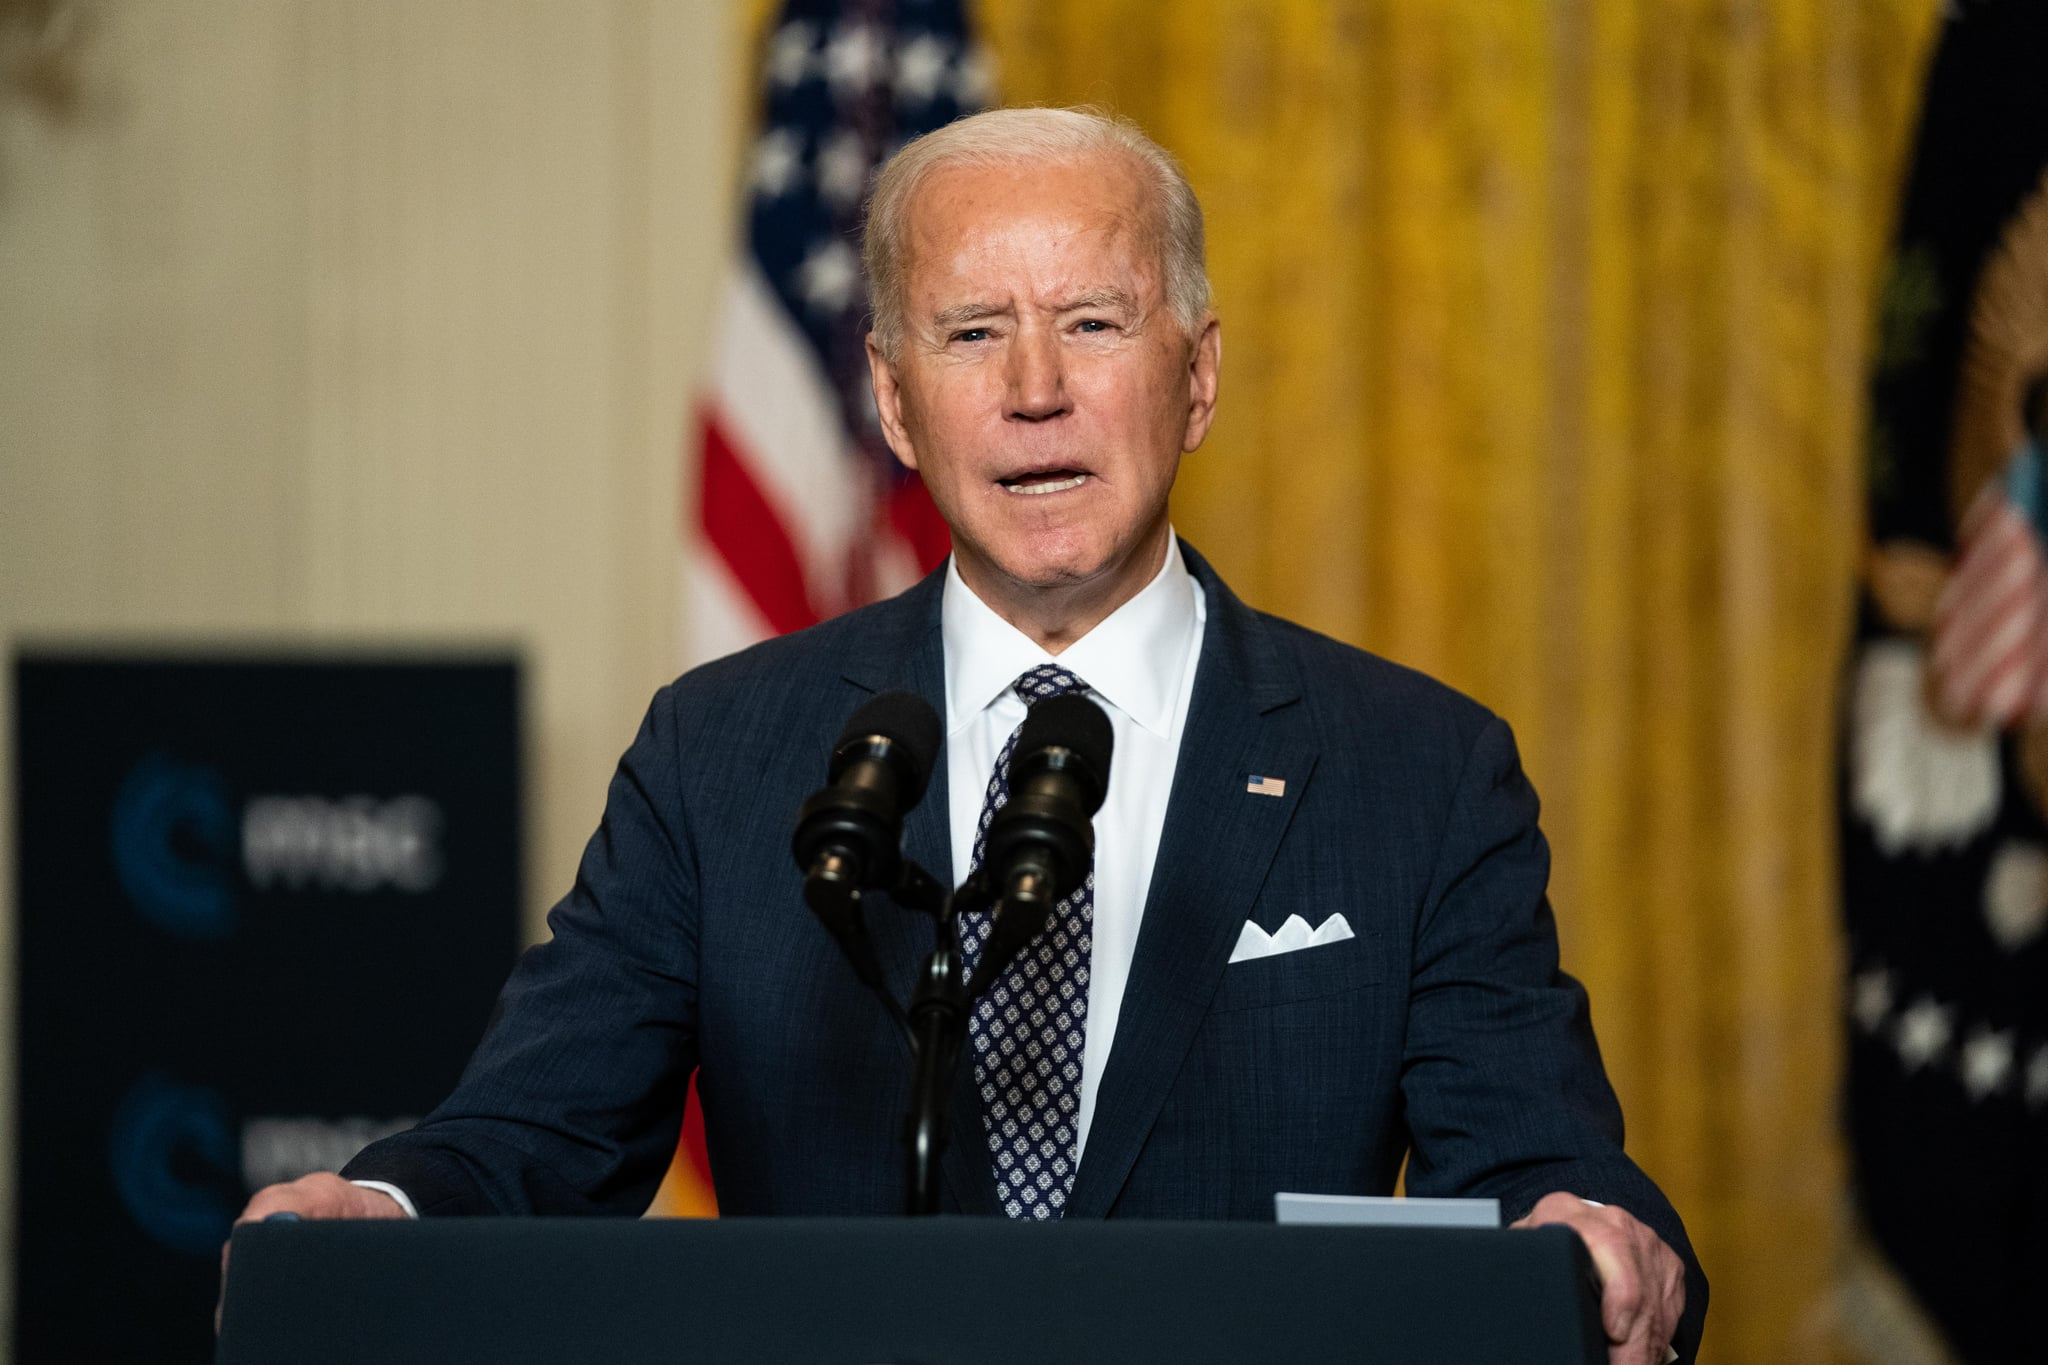 WASHINGTON, DC - FEBRUARY 19: U.S. President Joe Biden delivers remarks at a virtual event hosted by the Munich Security Conference in the East Room of the White House on February 19, 2021 in Washington, DC. In his remarks, President Biden stressed the United States' commitment to NATO after four years of the Trump administration undermining the alliance. (Photo by Anna Moneymaker-Pool/Getty Images)